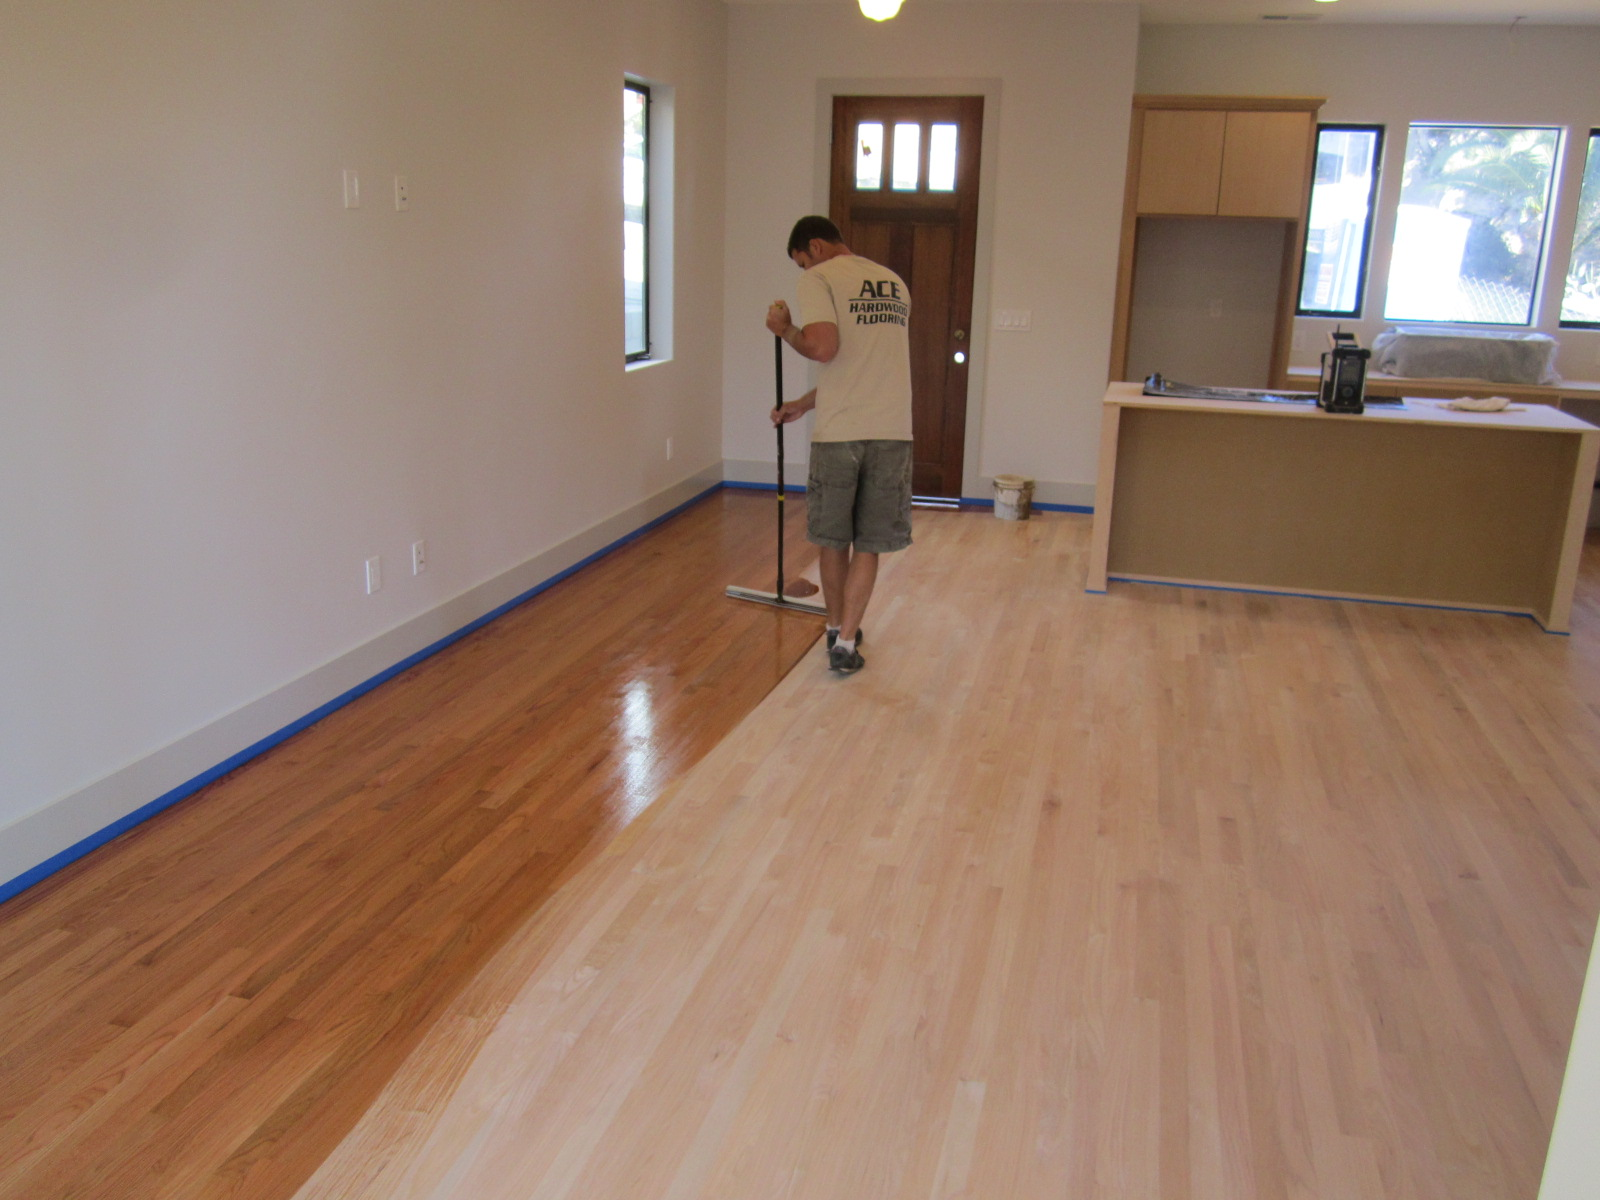 How to stain hardwood floors flooring ideas home for Hardwood floor colors